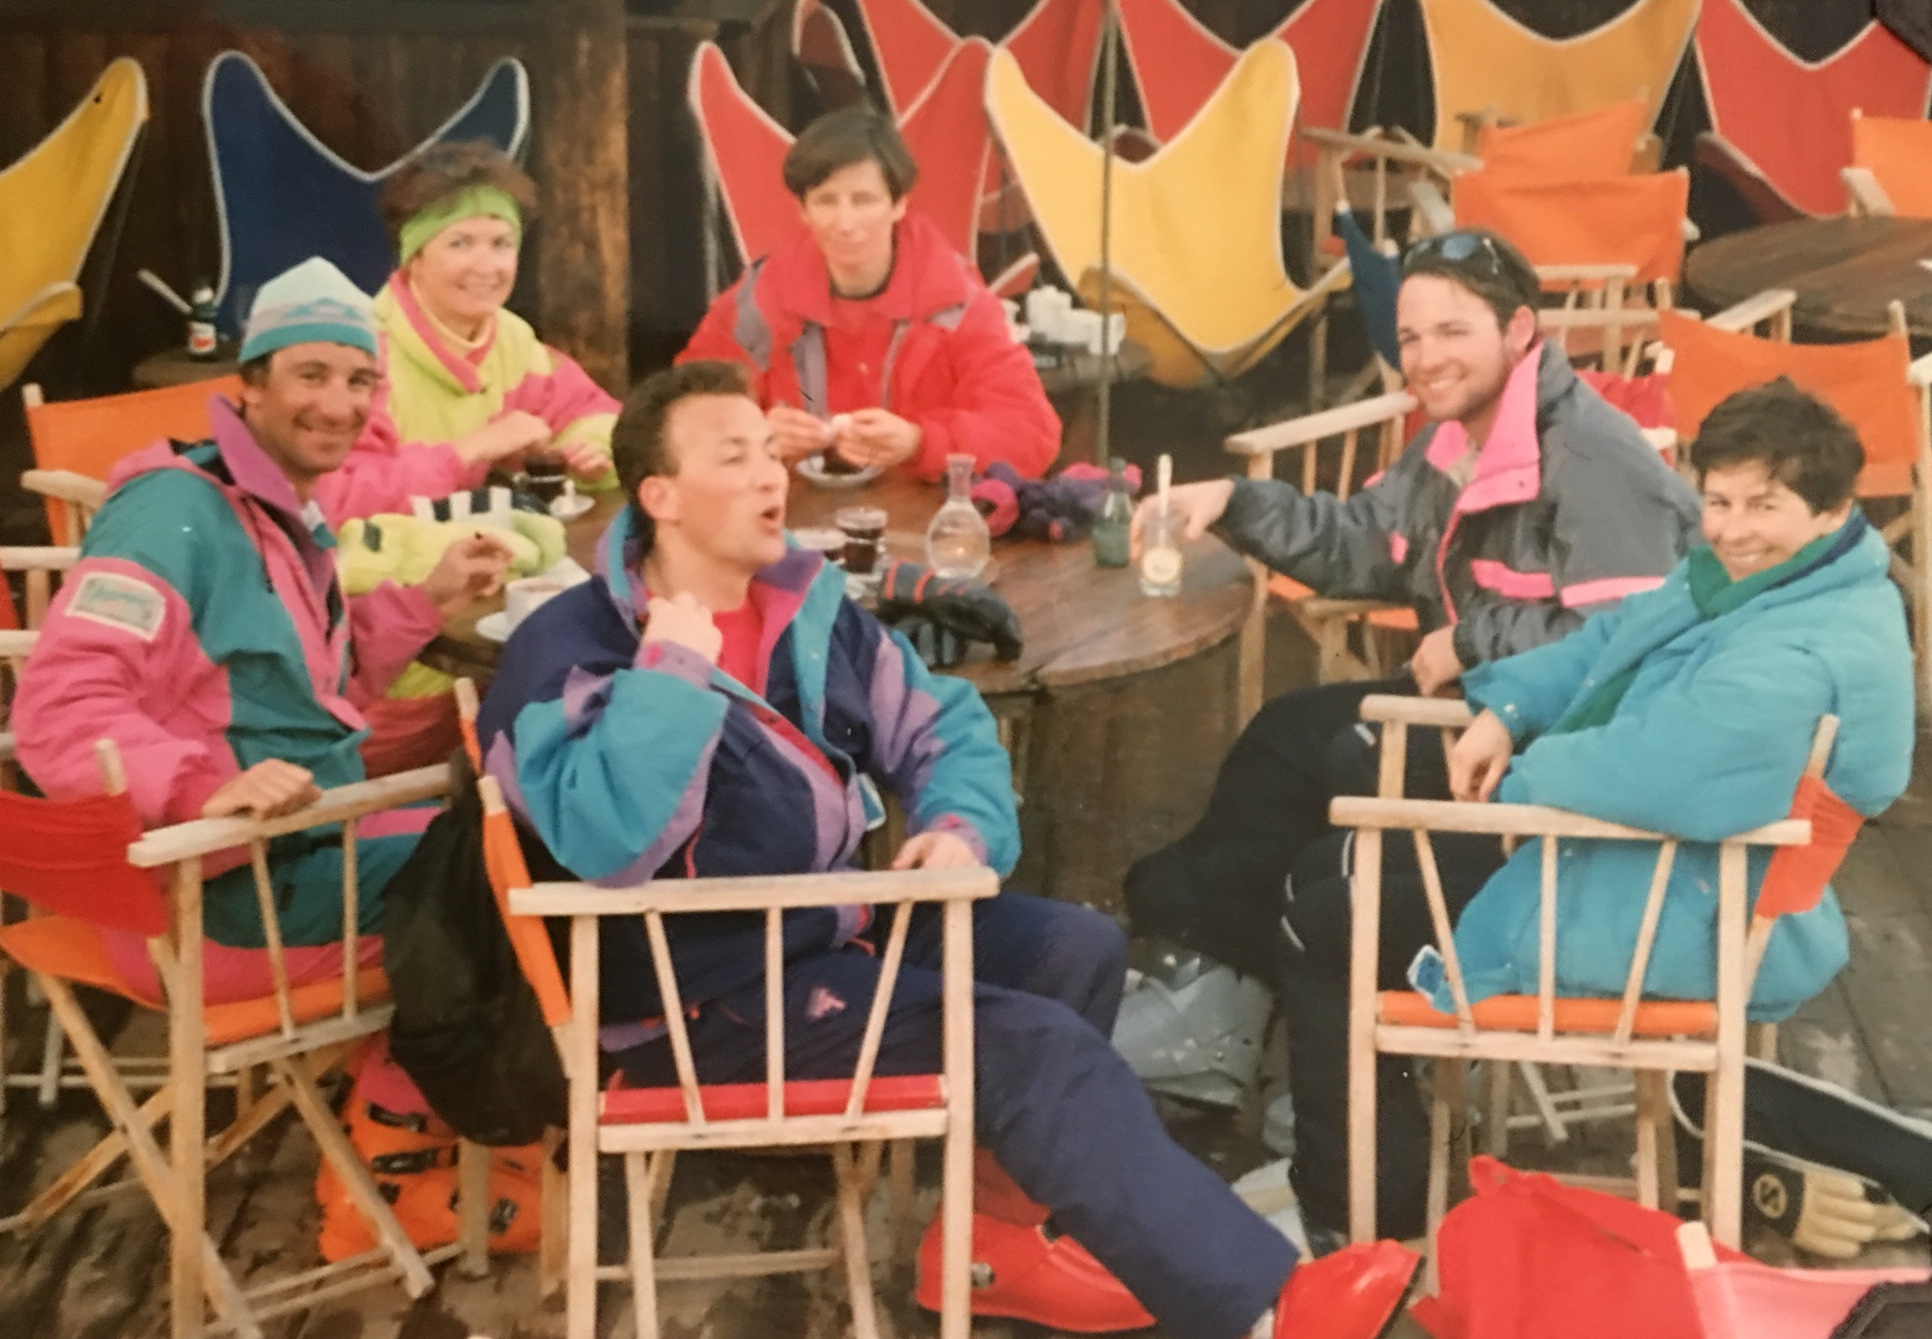 Stopping for coffee with my group. That's me on the Right in the gray and pink Euro ski jacket, our guide on the left. French ski fashion in 1990